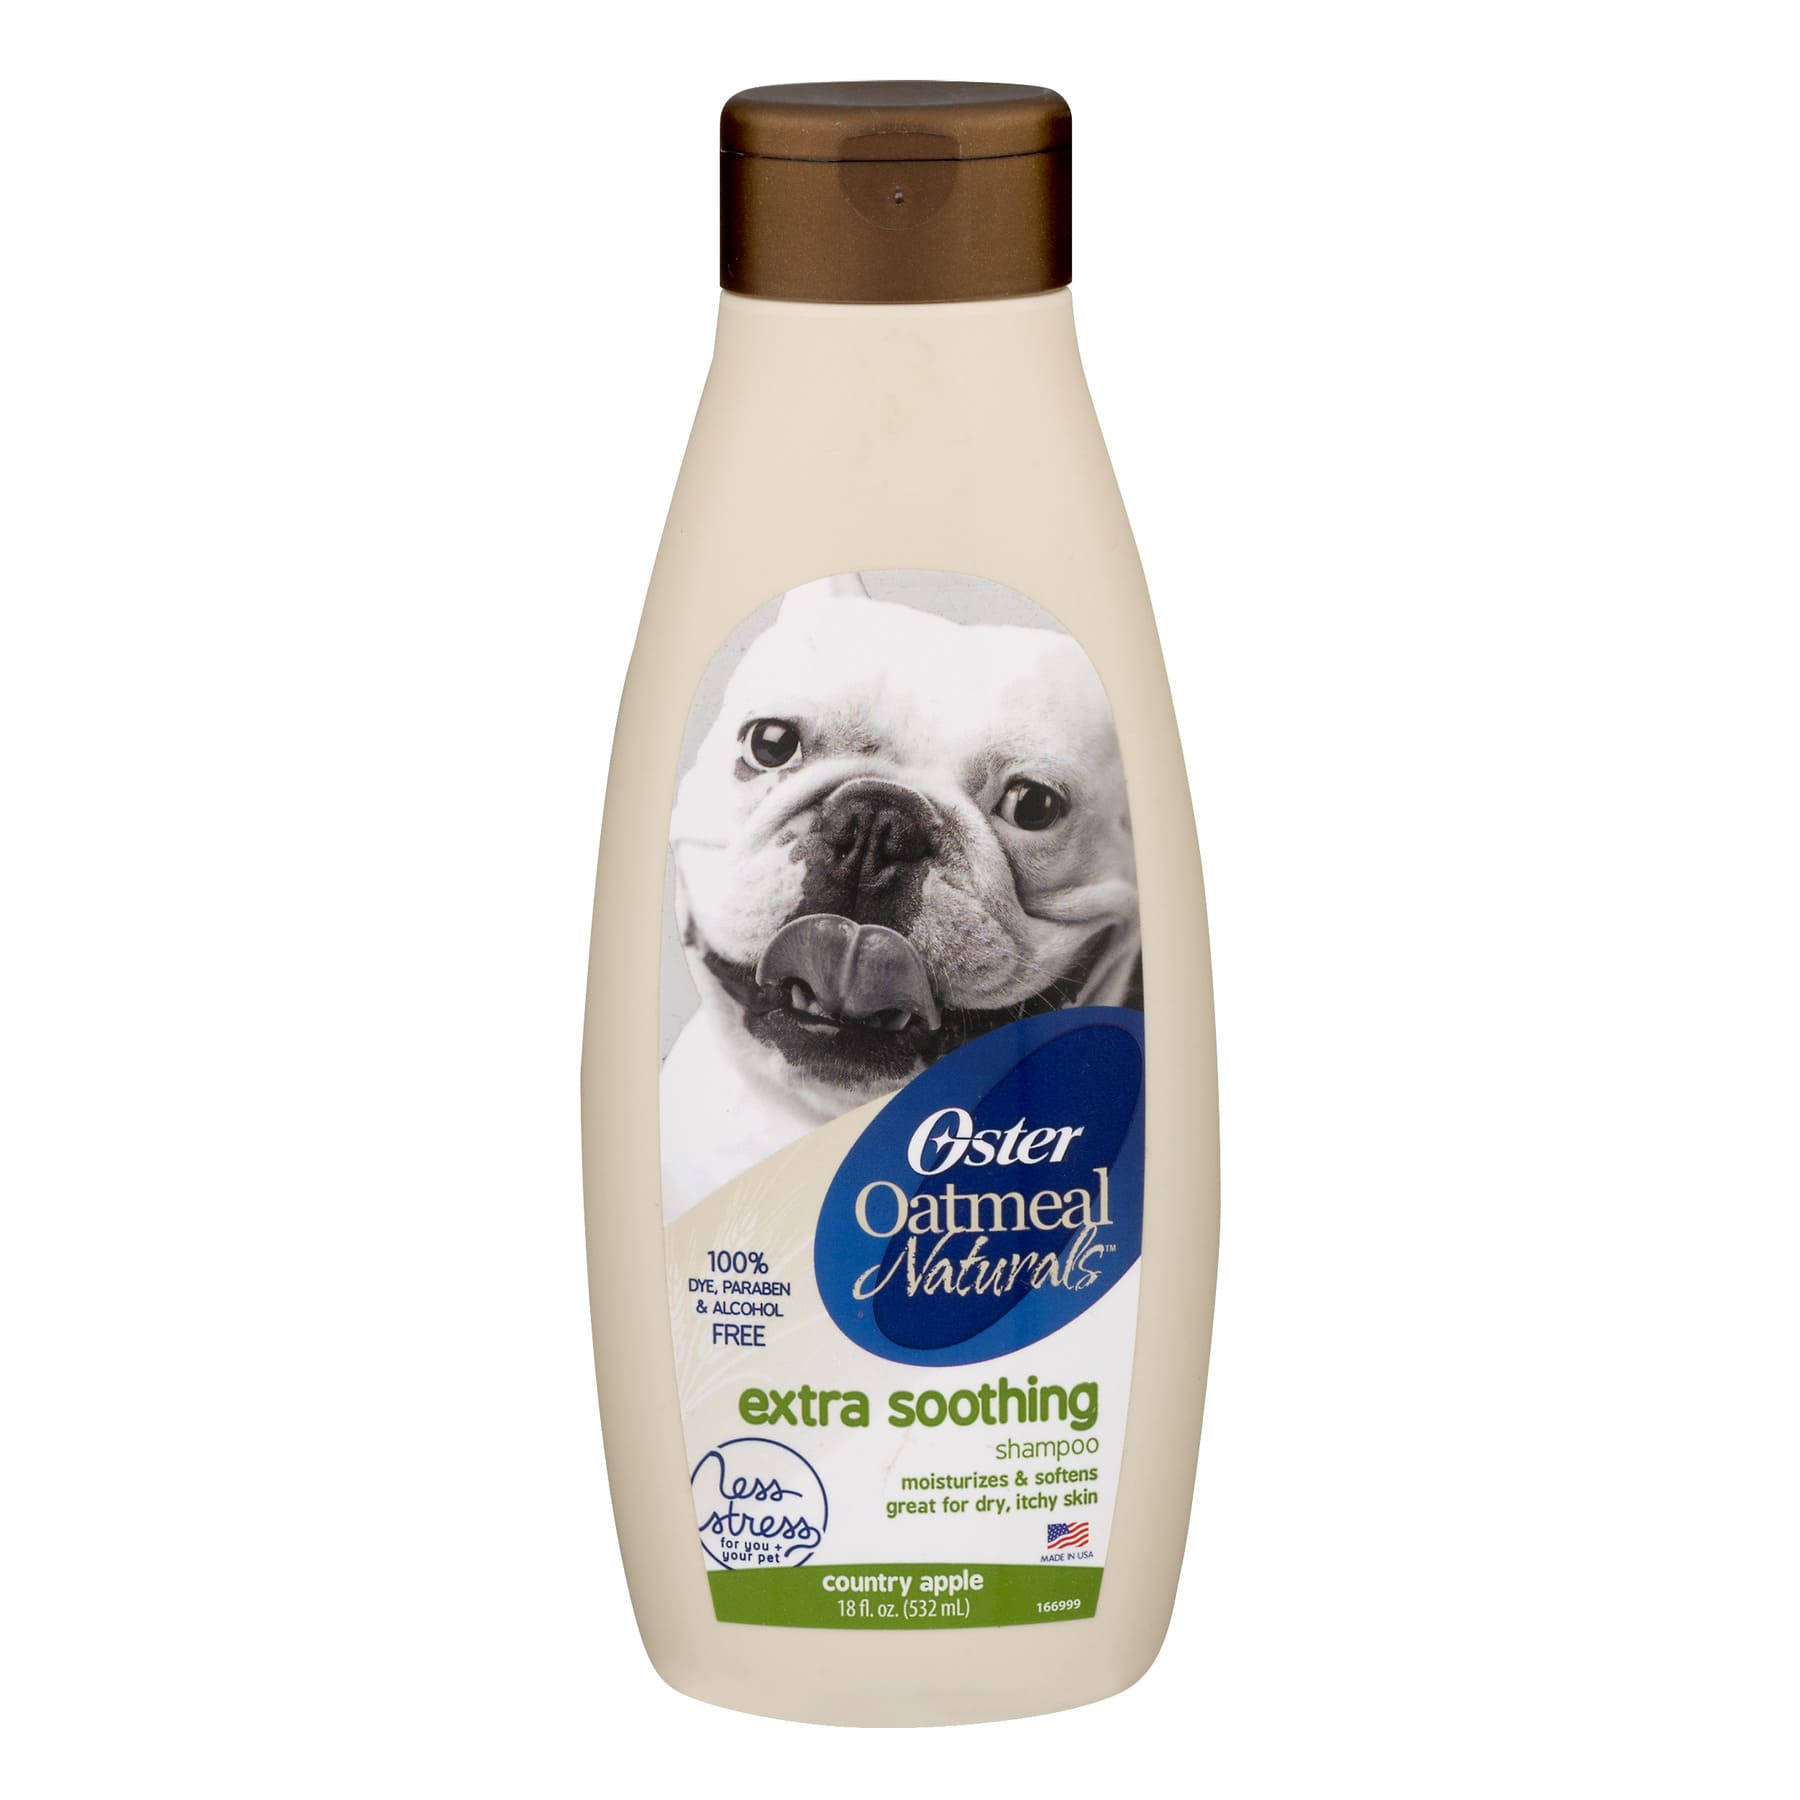 Oster Oatmeal Naturals Extra Soothing Dog Shampoo with Country Apple Scent, 18 oz., Walmart $1.62